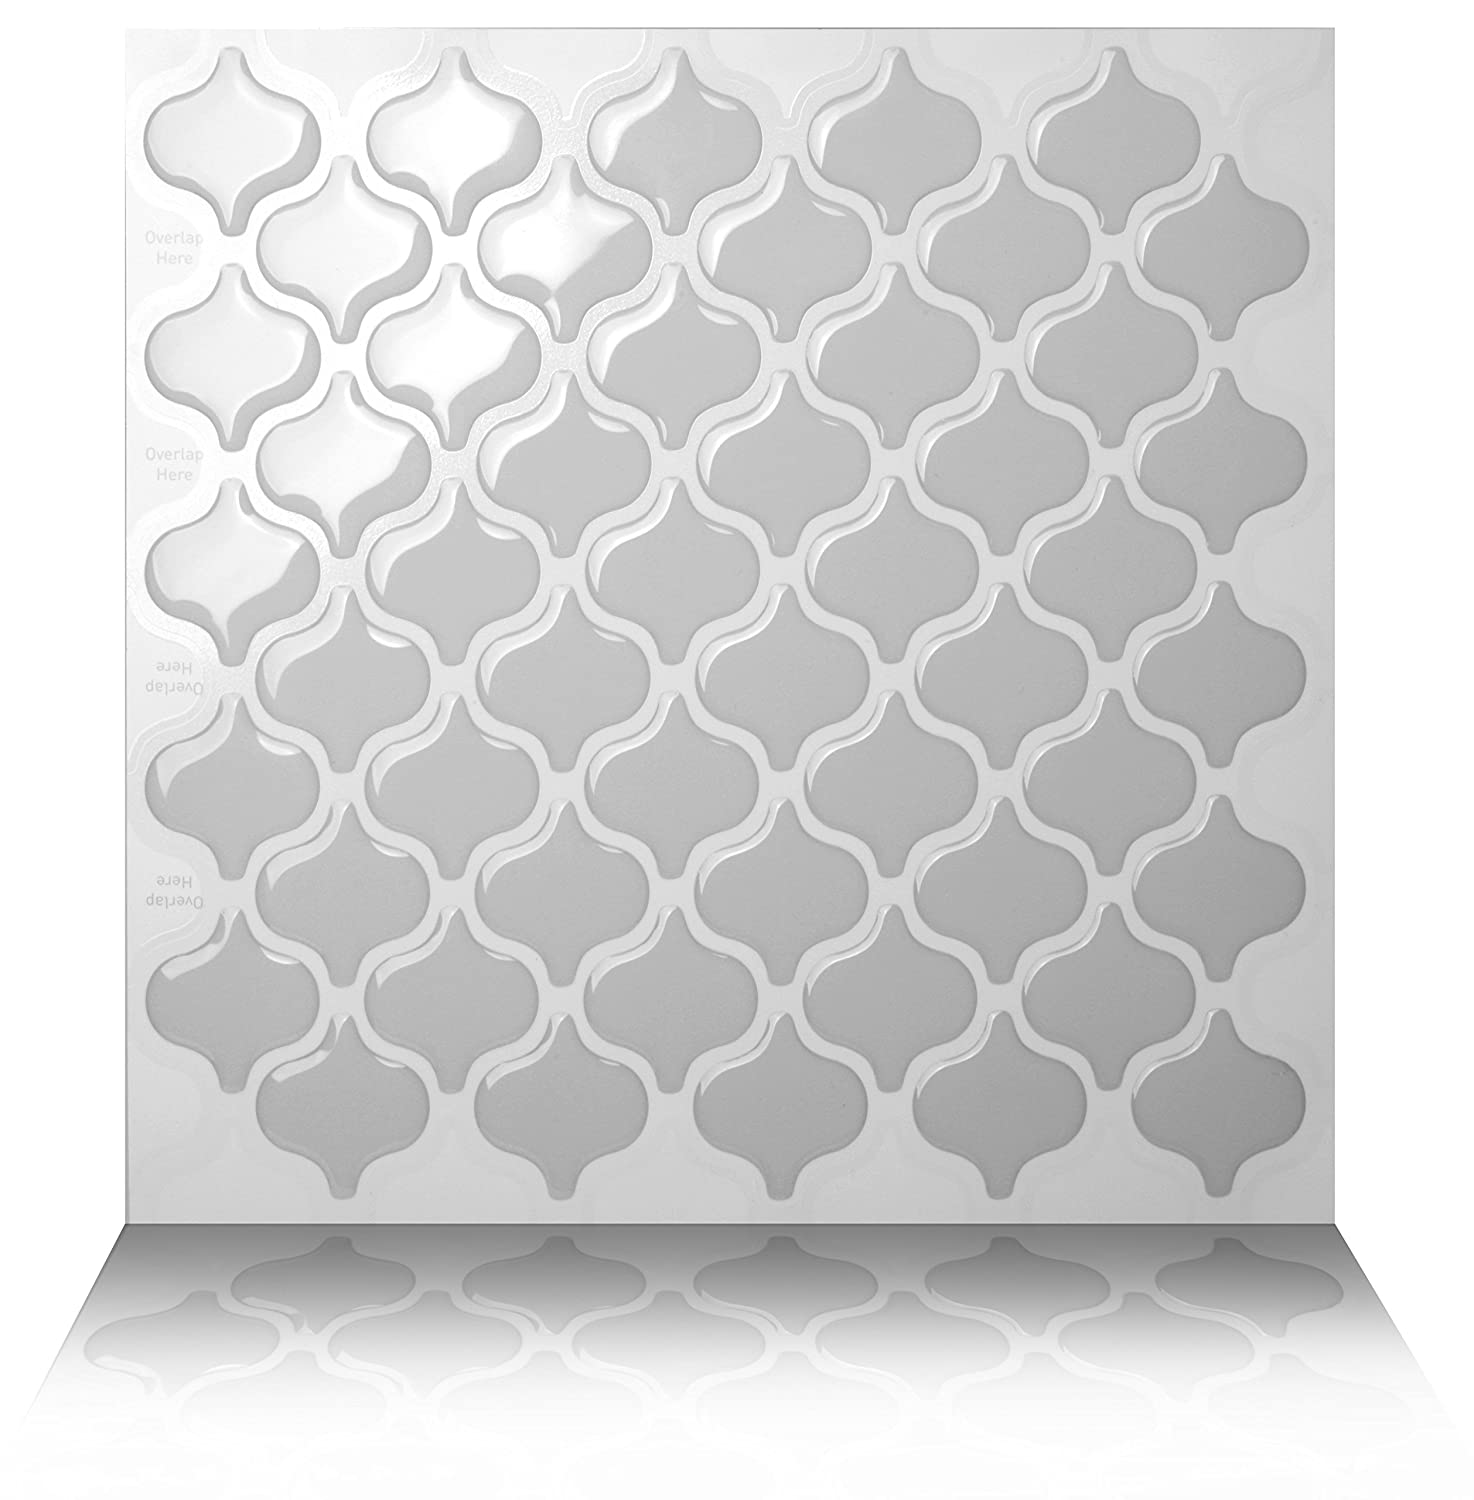 Tic Tac Tiles® - Premium Anti-mold Peel and Stick Wall Tiles in Damask Grigio (5)